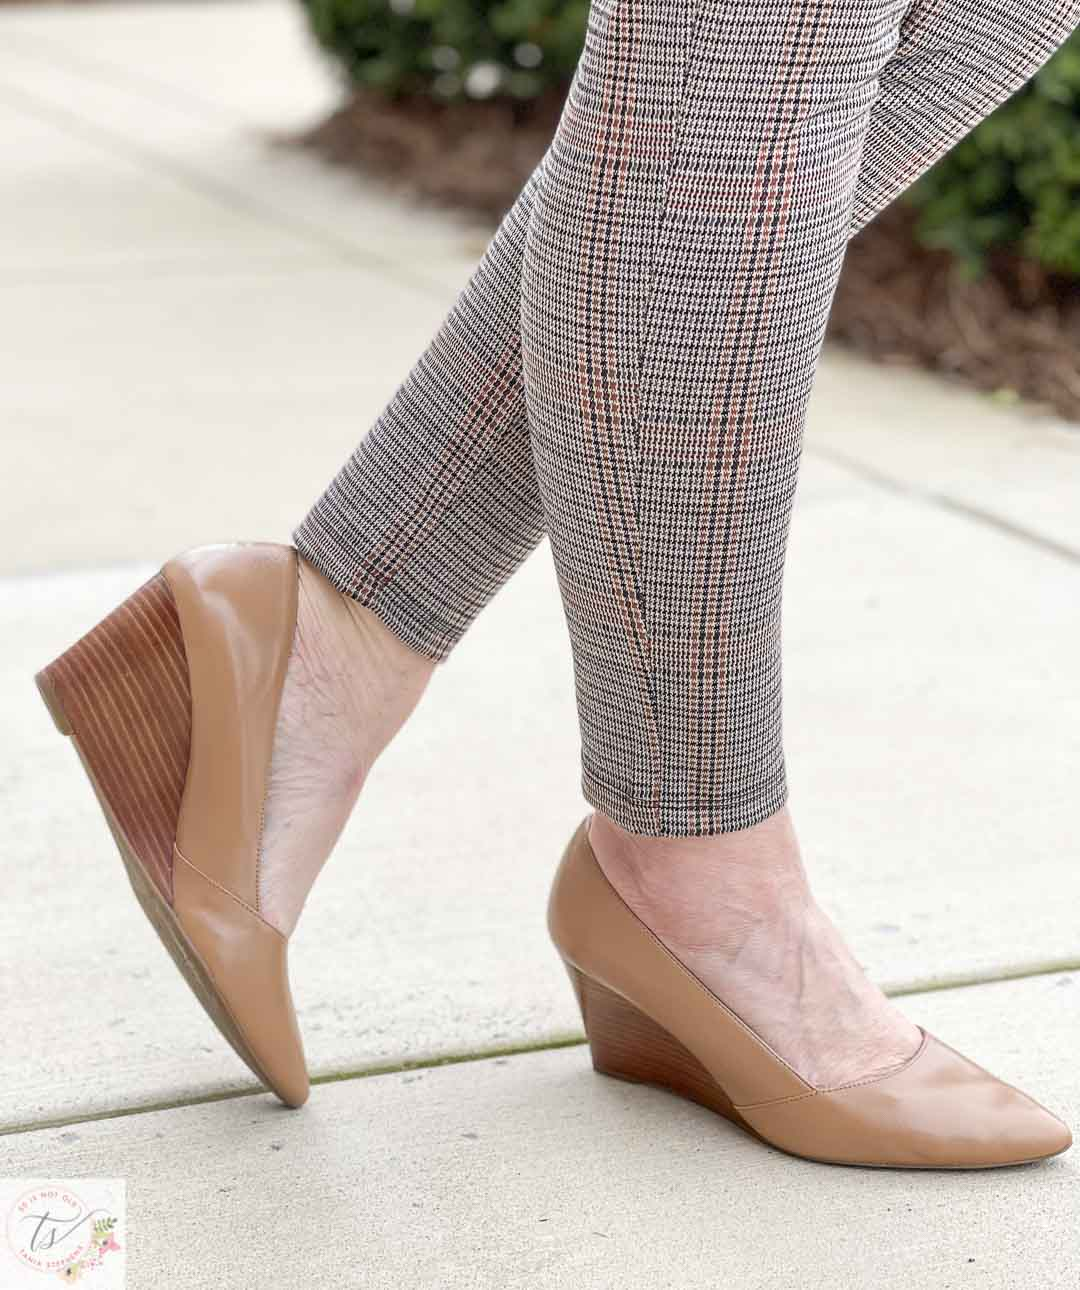 Over 40 Fashion Blogger, Tania Stephens, is wearing taupe wedges and plaid pants